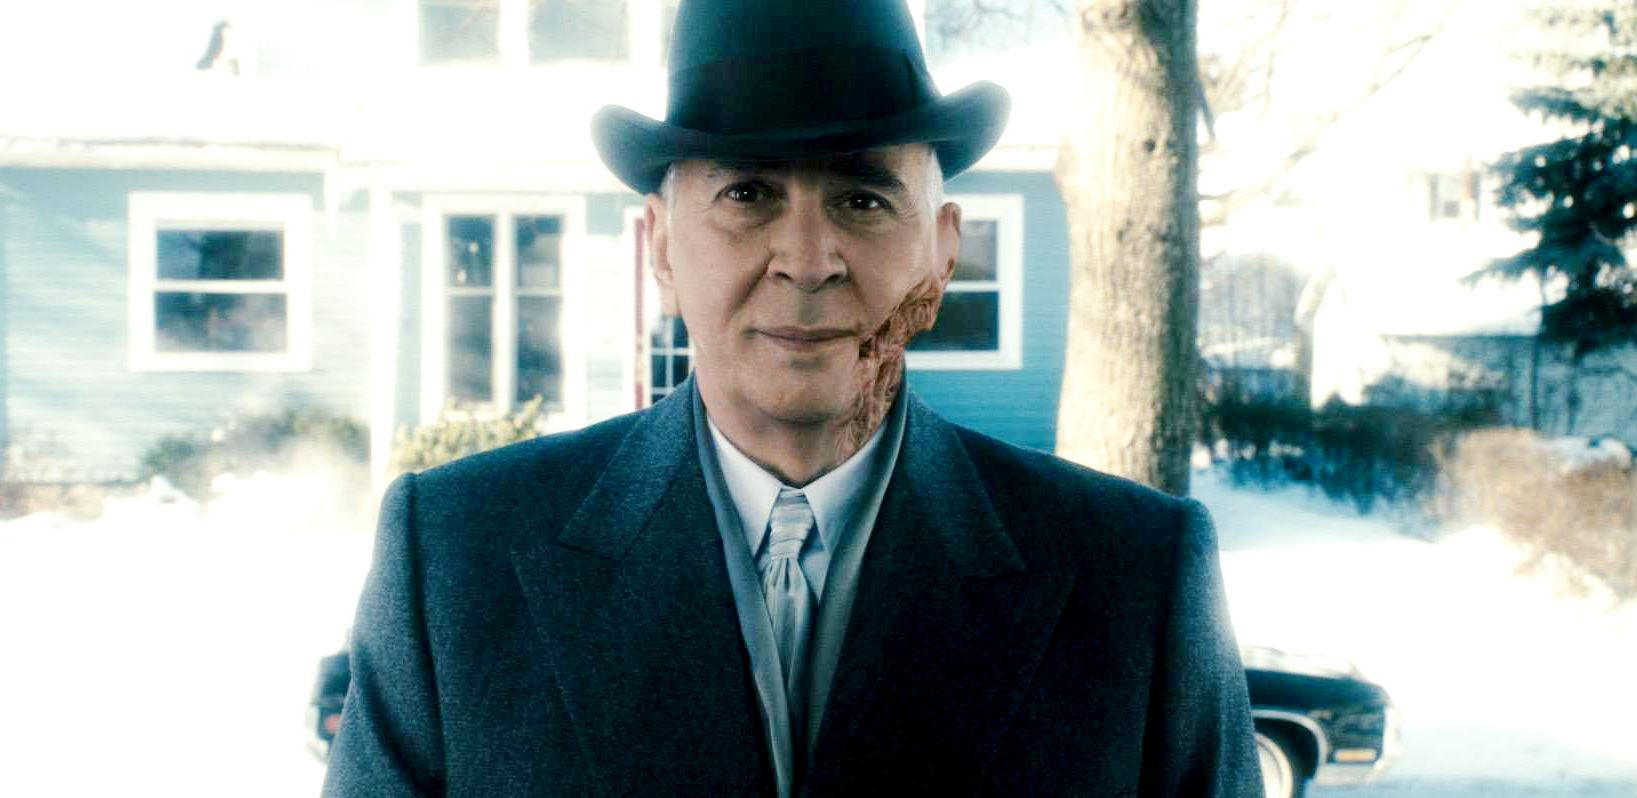 Frank Langella as the mysterious Mr Steward in The Box (2009)